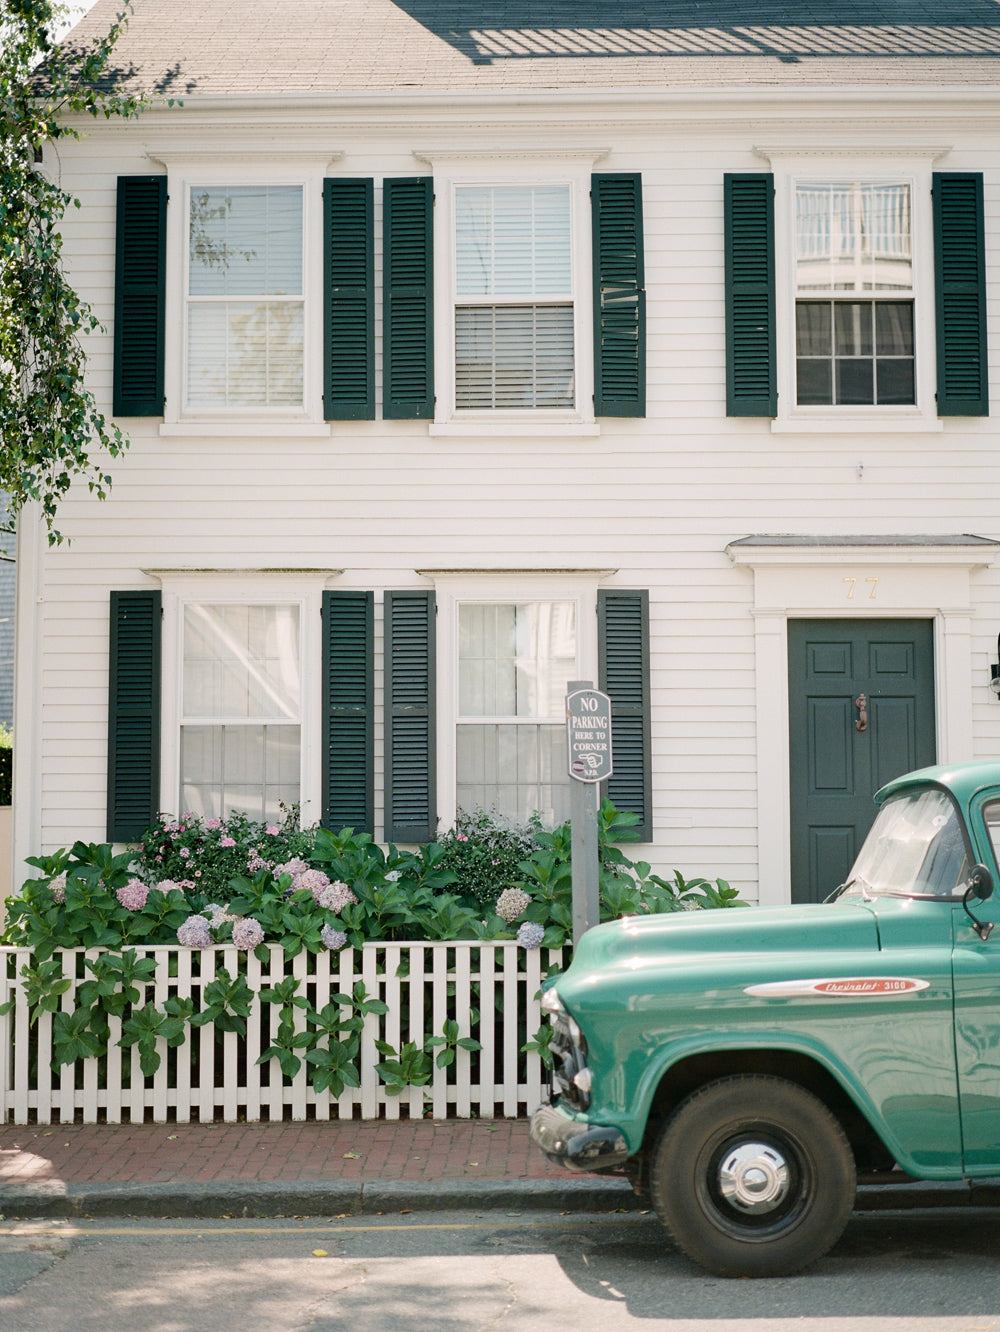 Green Truck in Nantucket